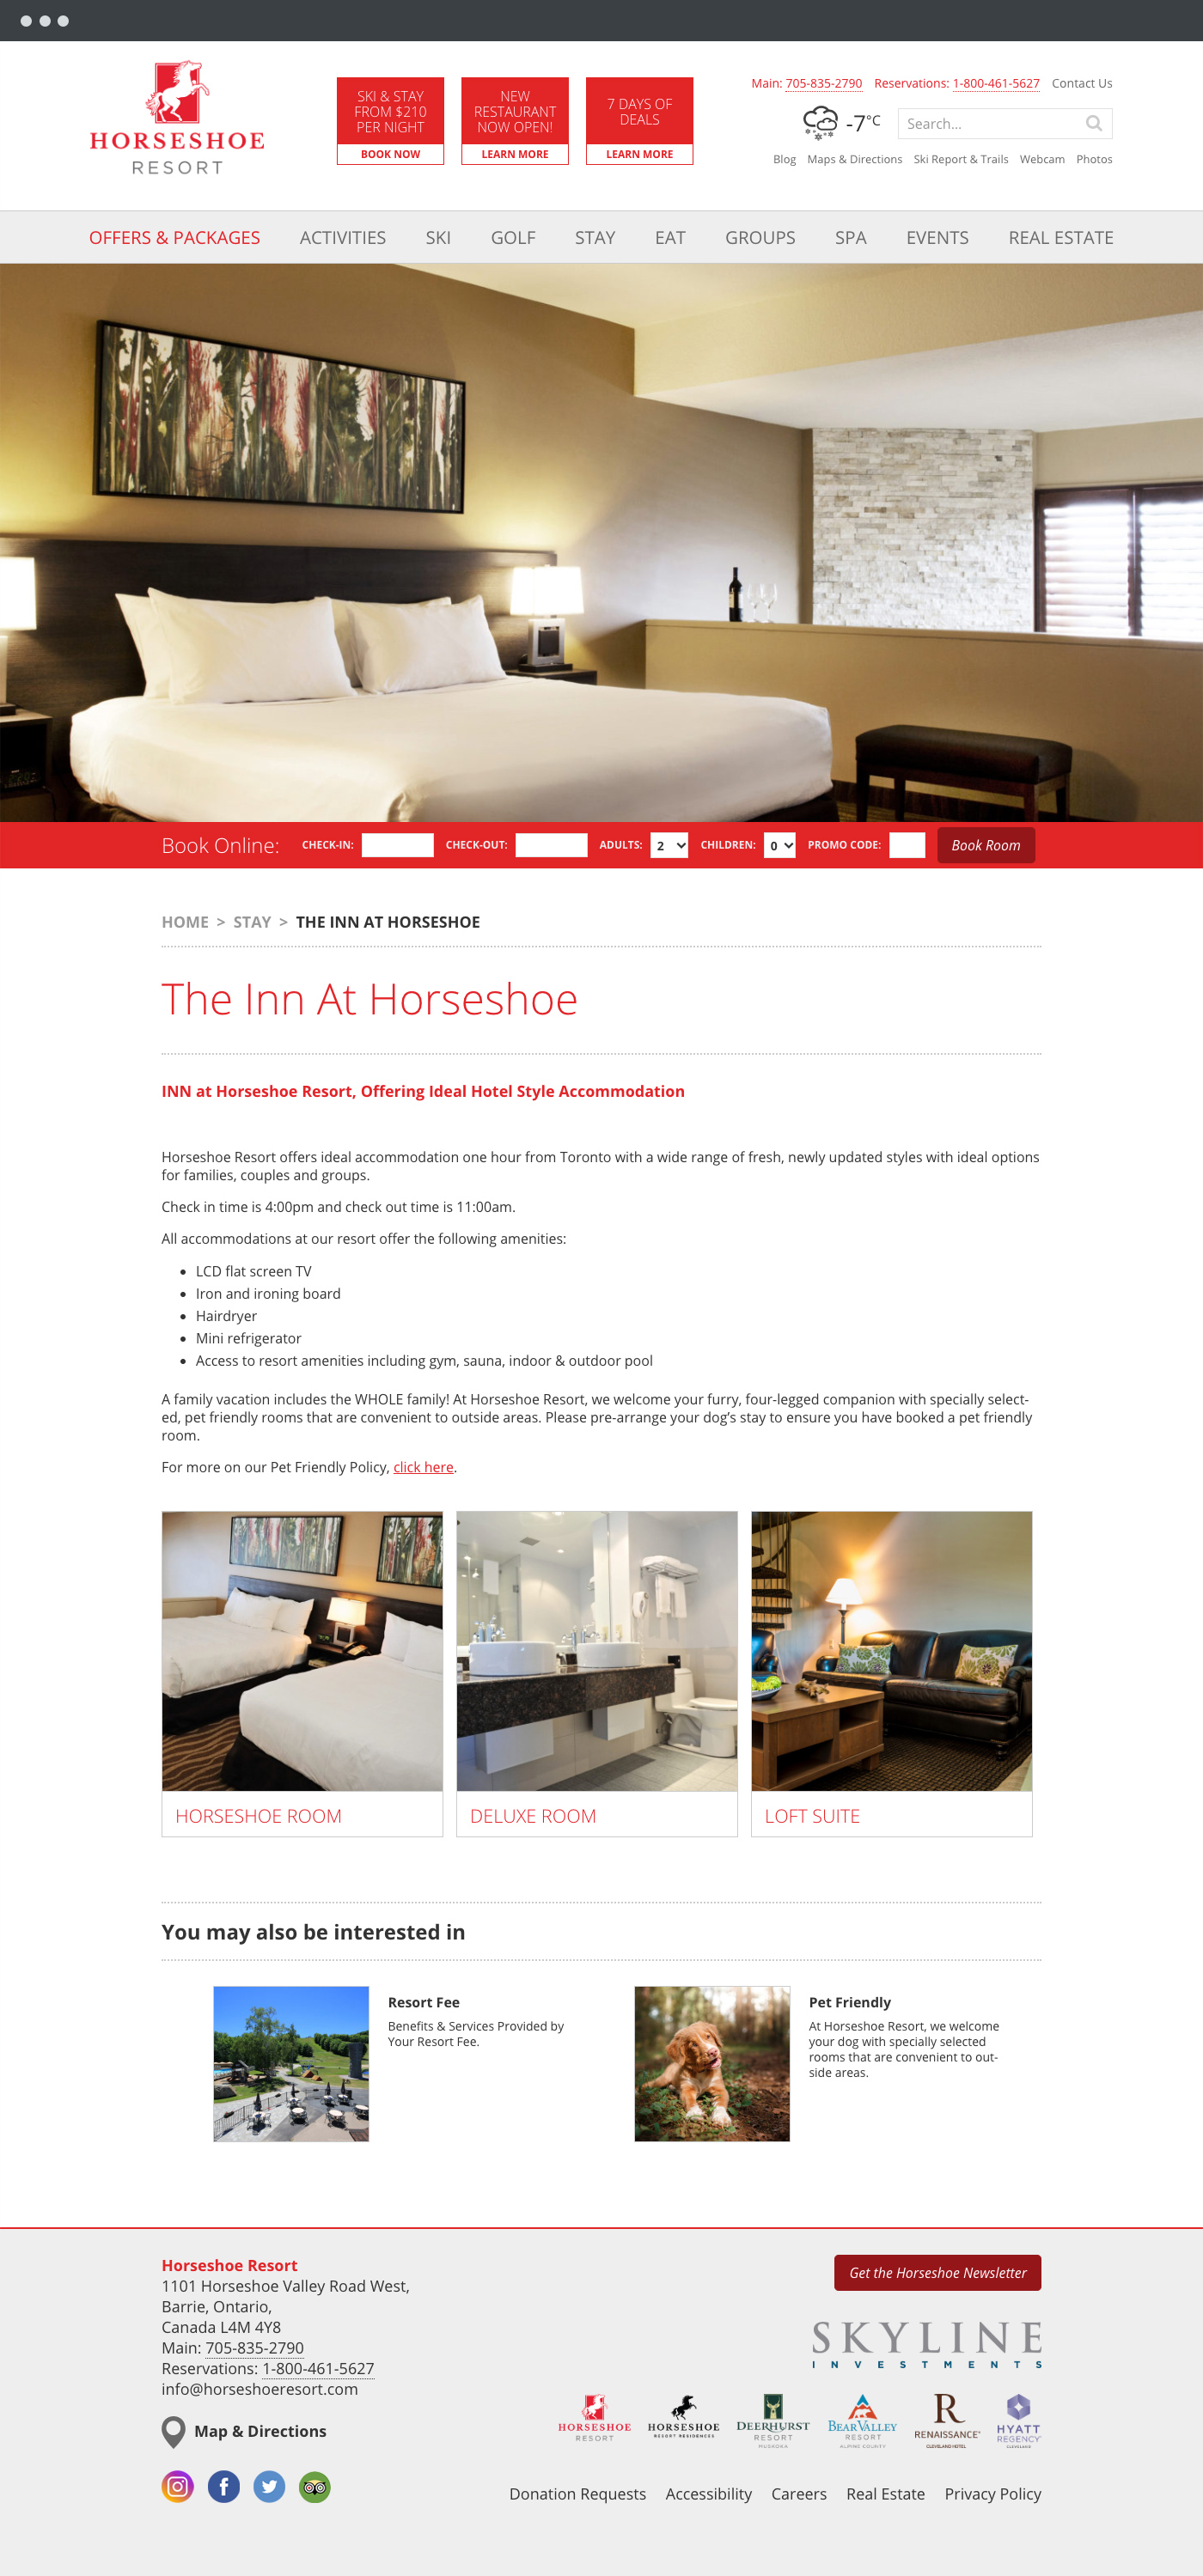 Horseshoe Resort website design 3